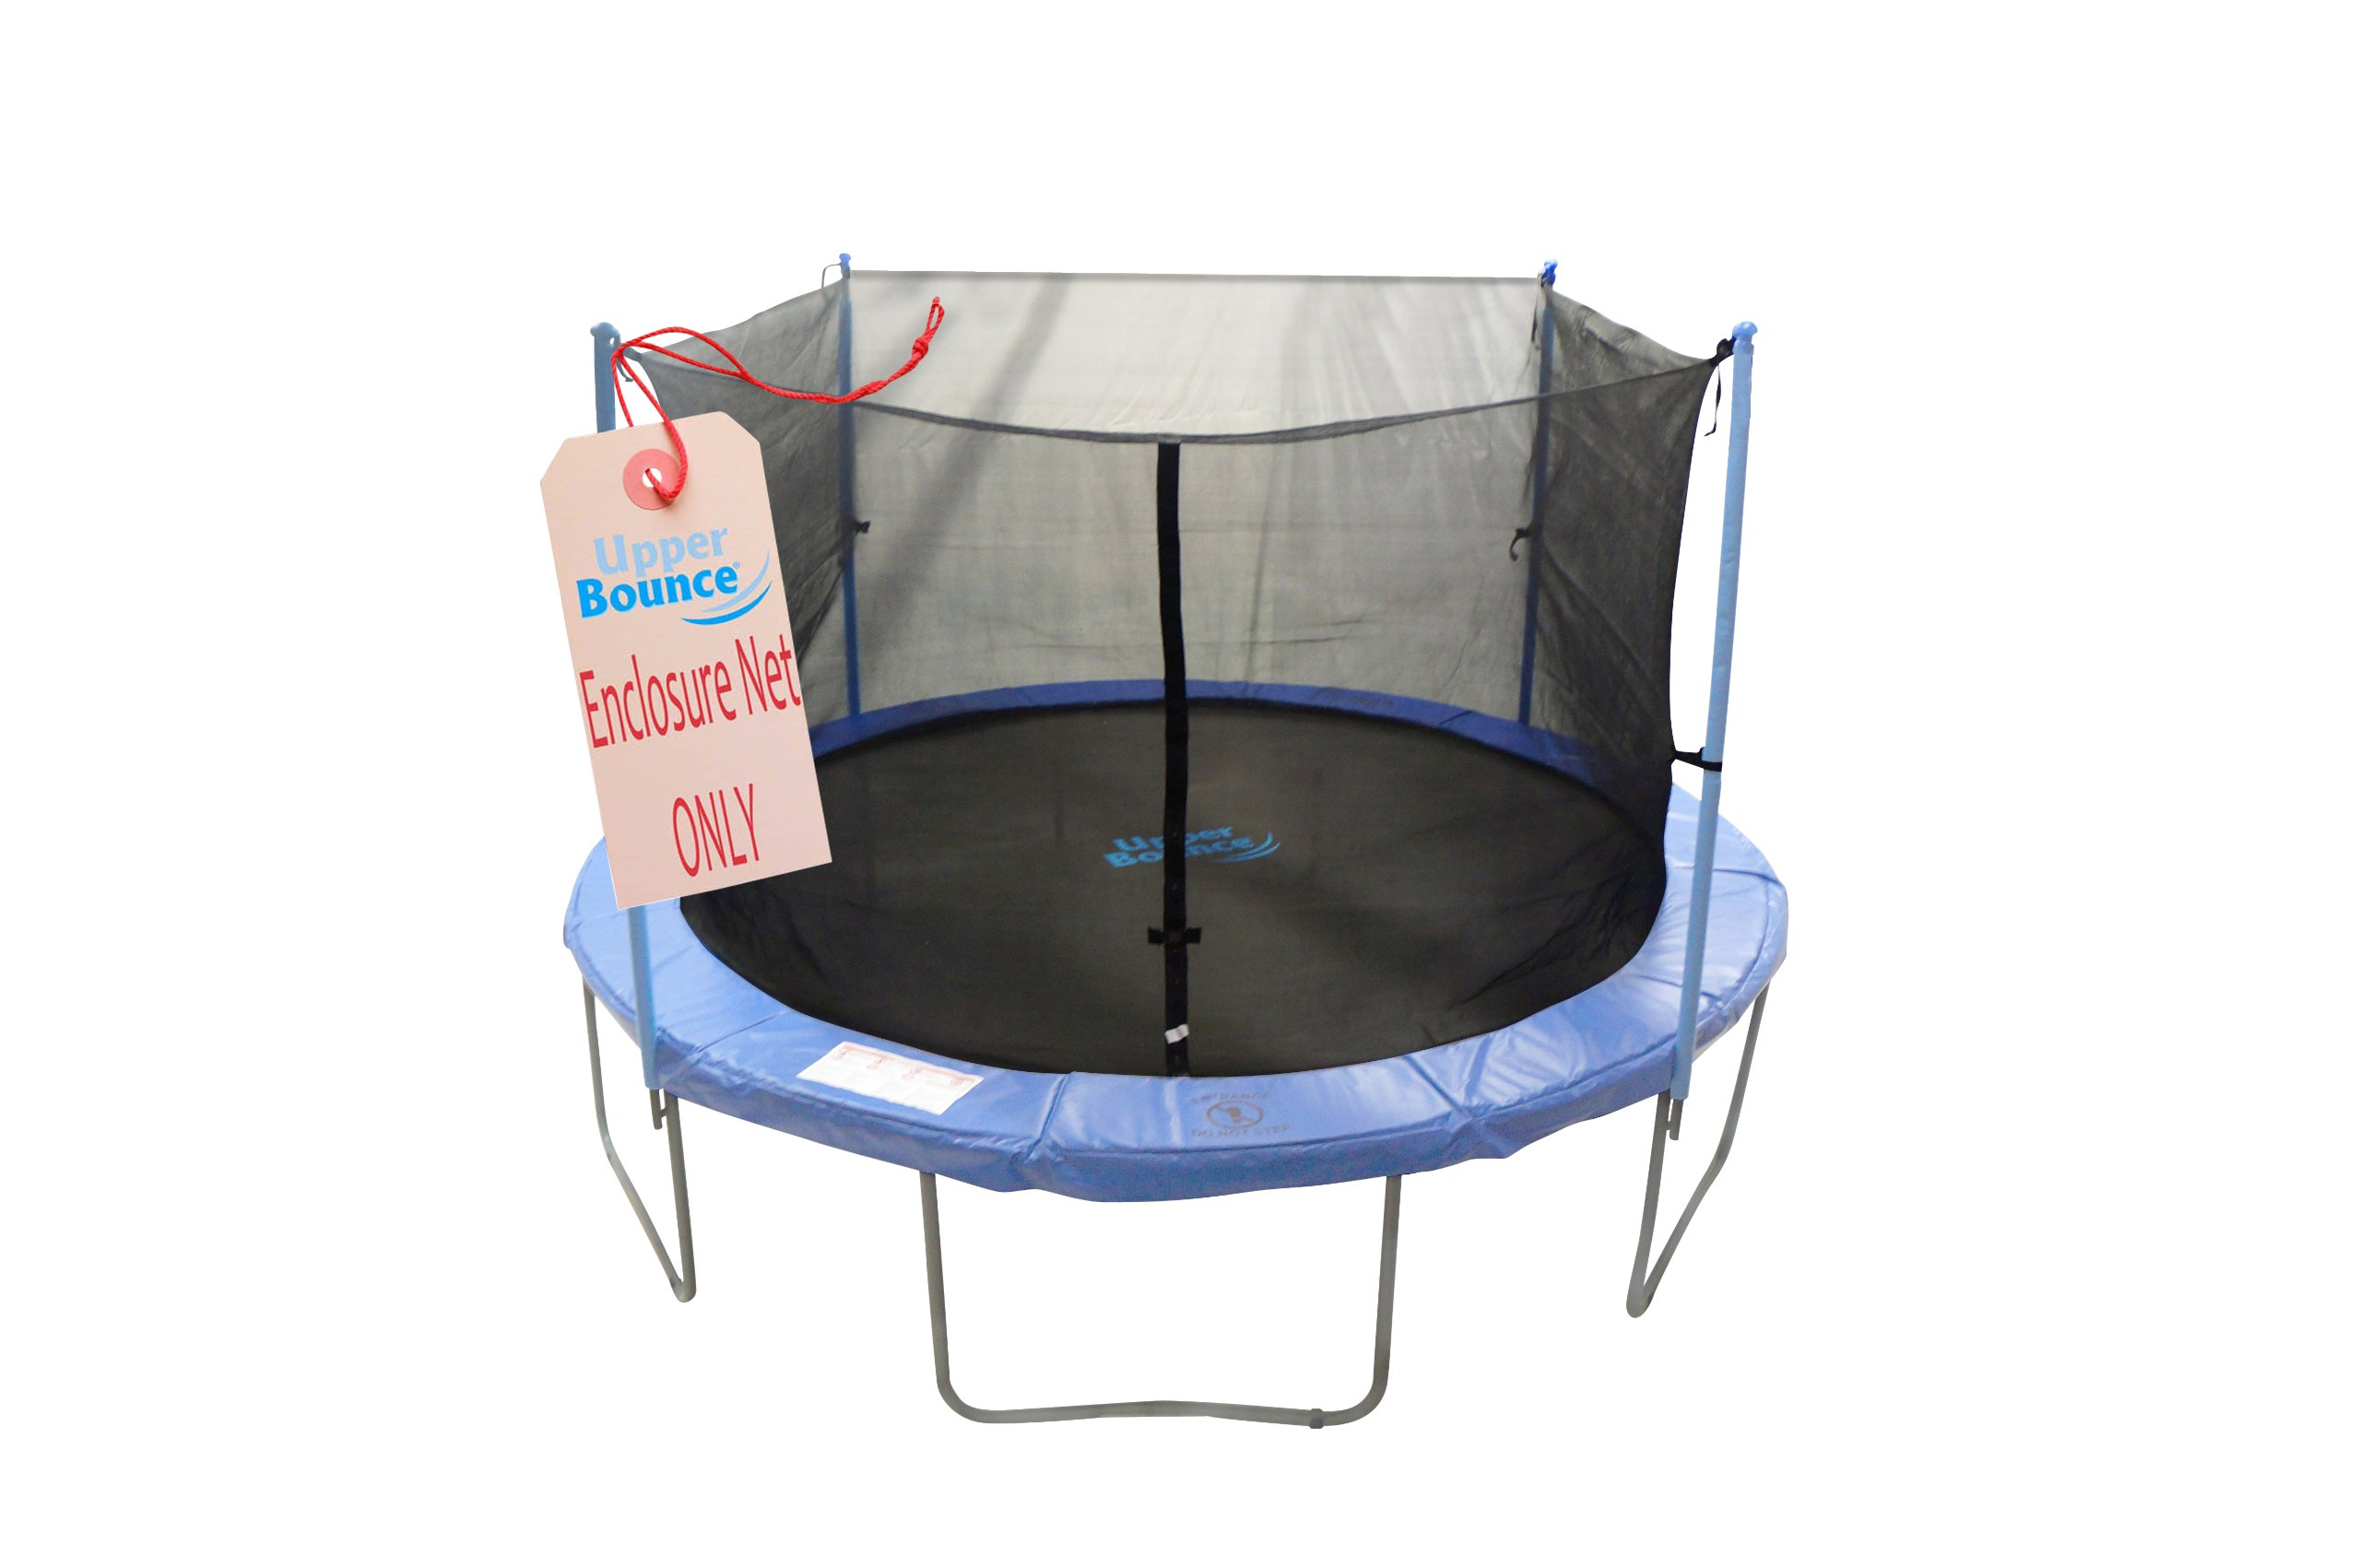 Upper Bounce Super Net & Pad Combo Fits for 14' Round Frames Using 4 Poles or 2 Arches by Upper Bounce (Image #2)